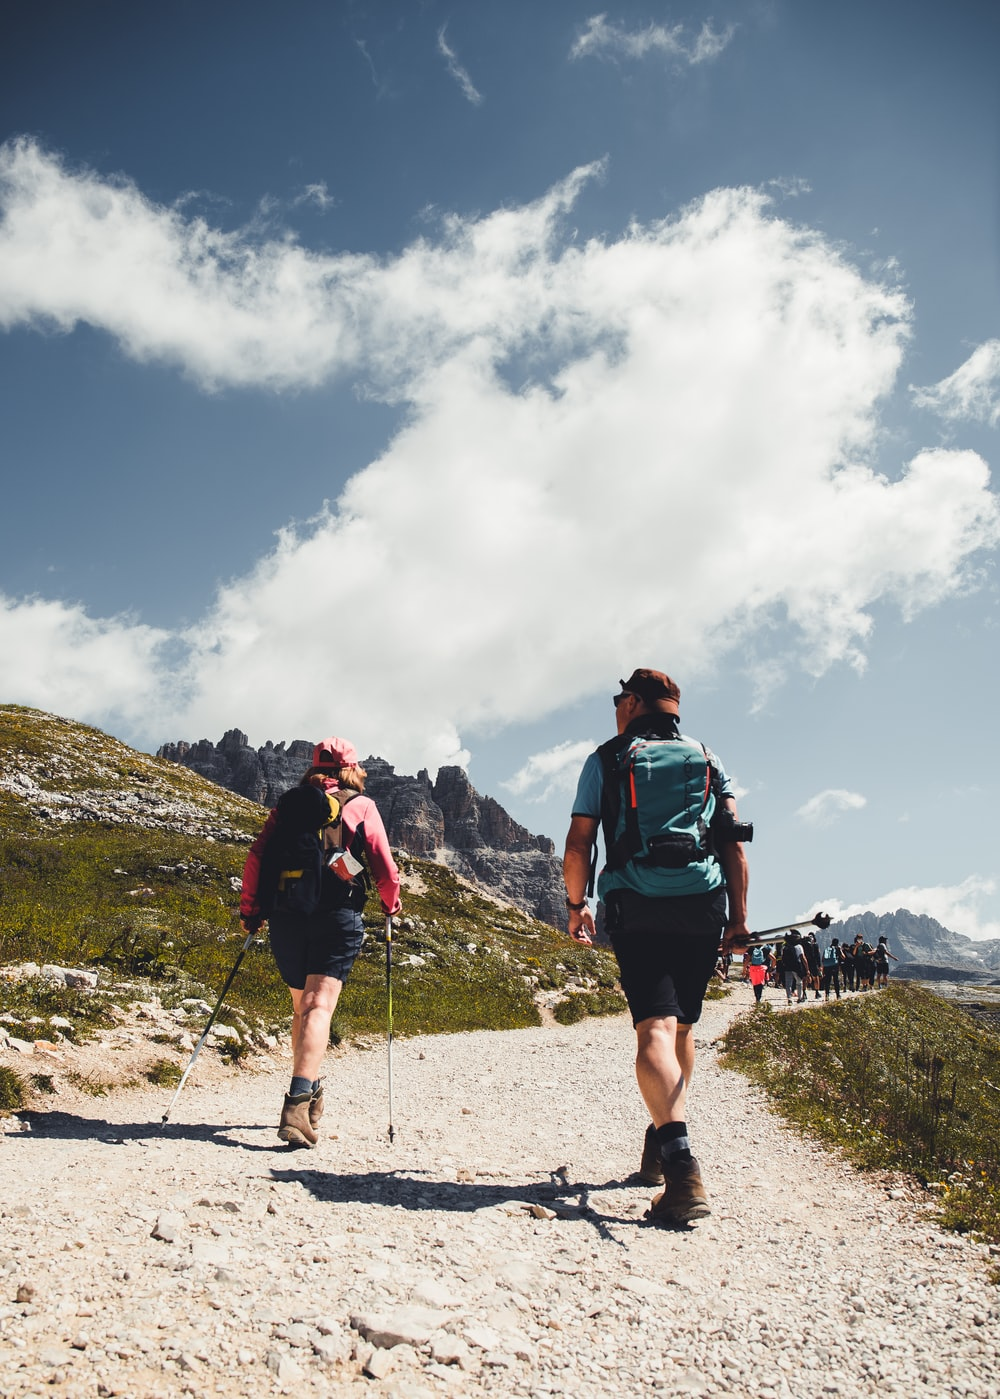 man in green shirt and black shorts with hiking backpack walking on gray sand during daytime